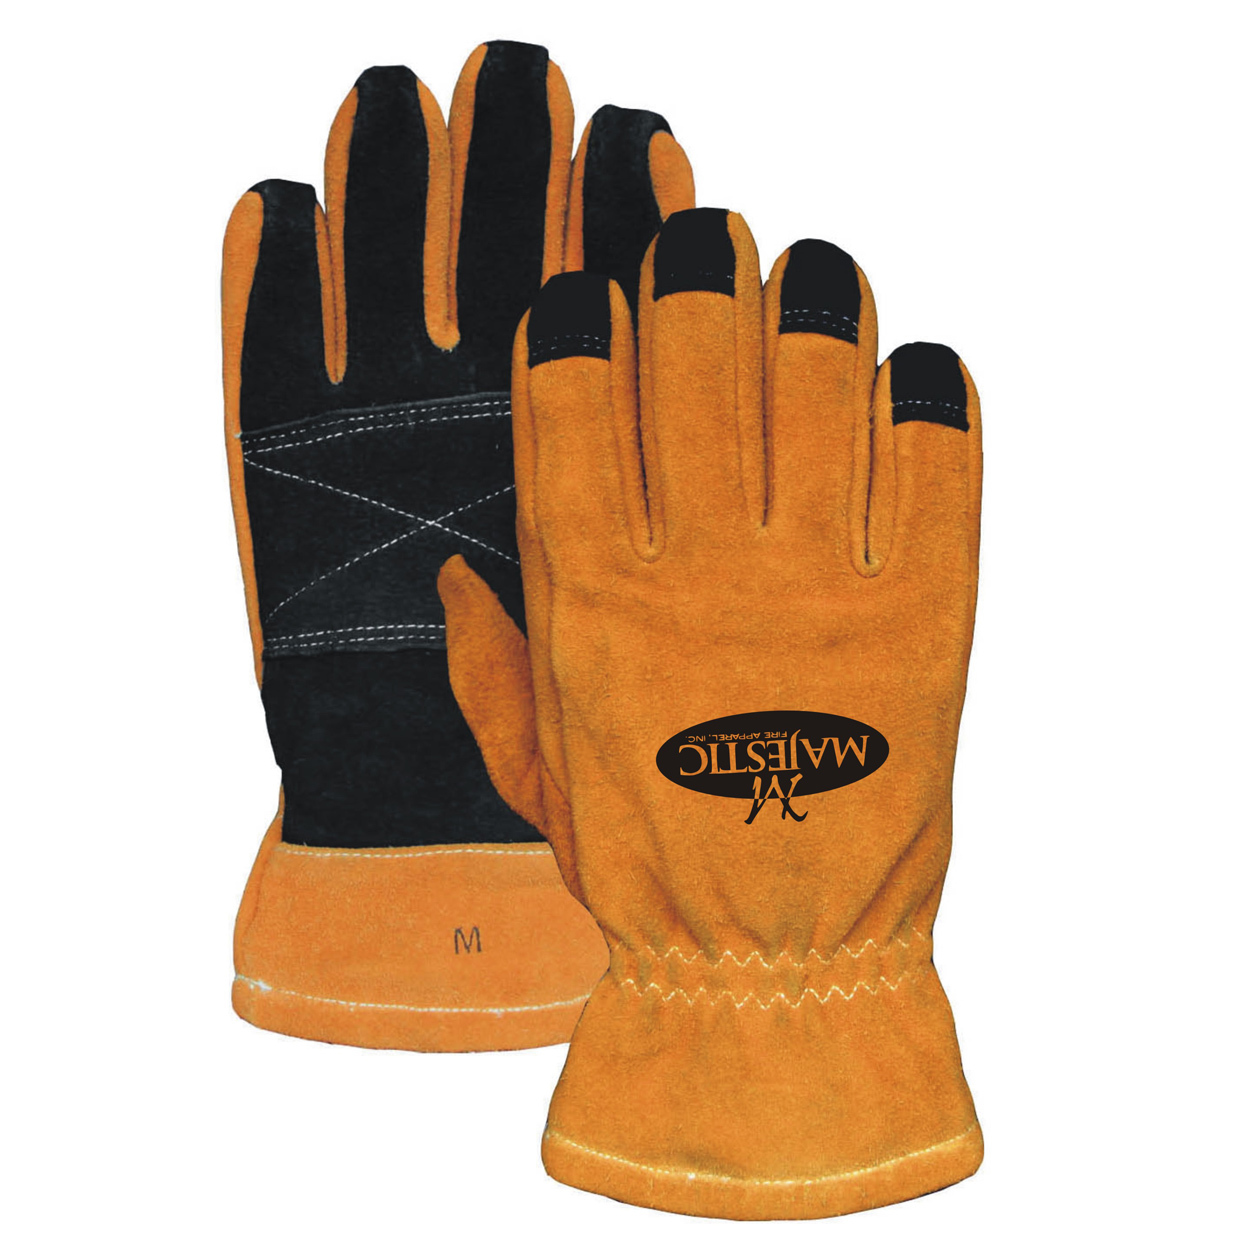 Majestic Fire Apparel Structural Firefighting Glove